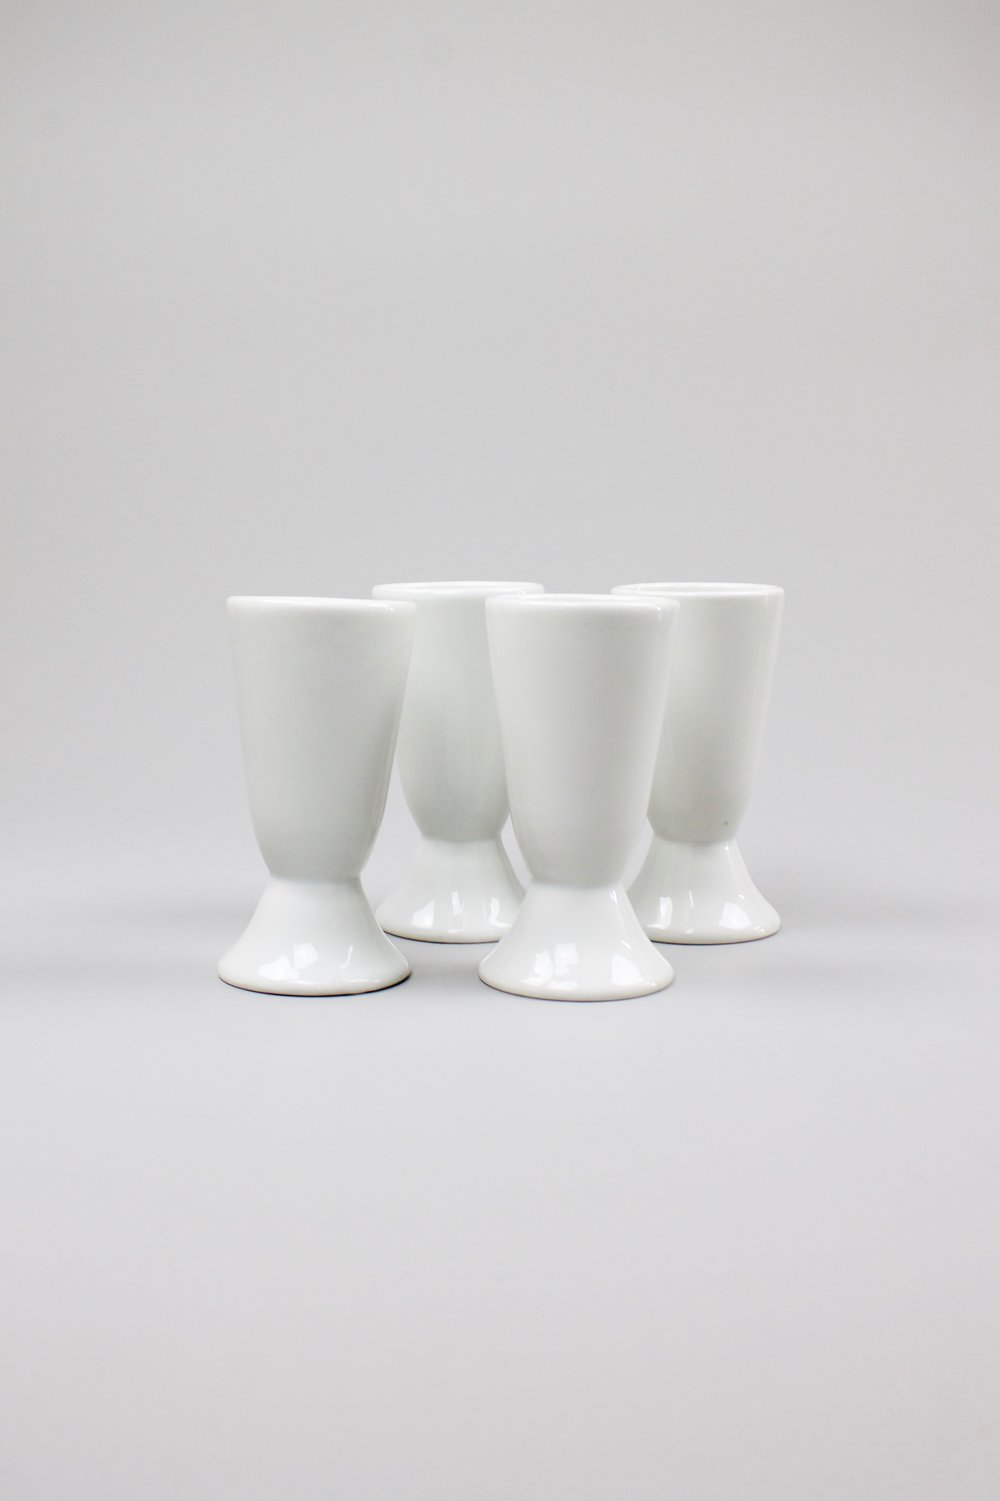 White ceramic cups   Set of four plain, oversized cups. These ceramic cone shapes could also be … lamp shades?